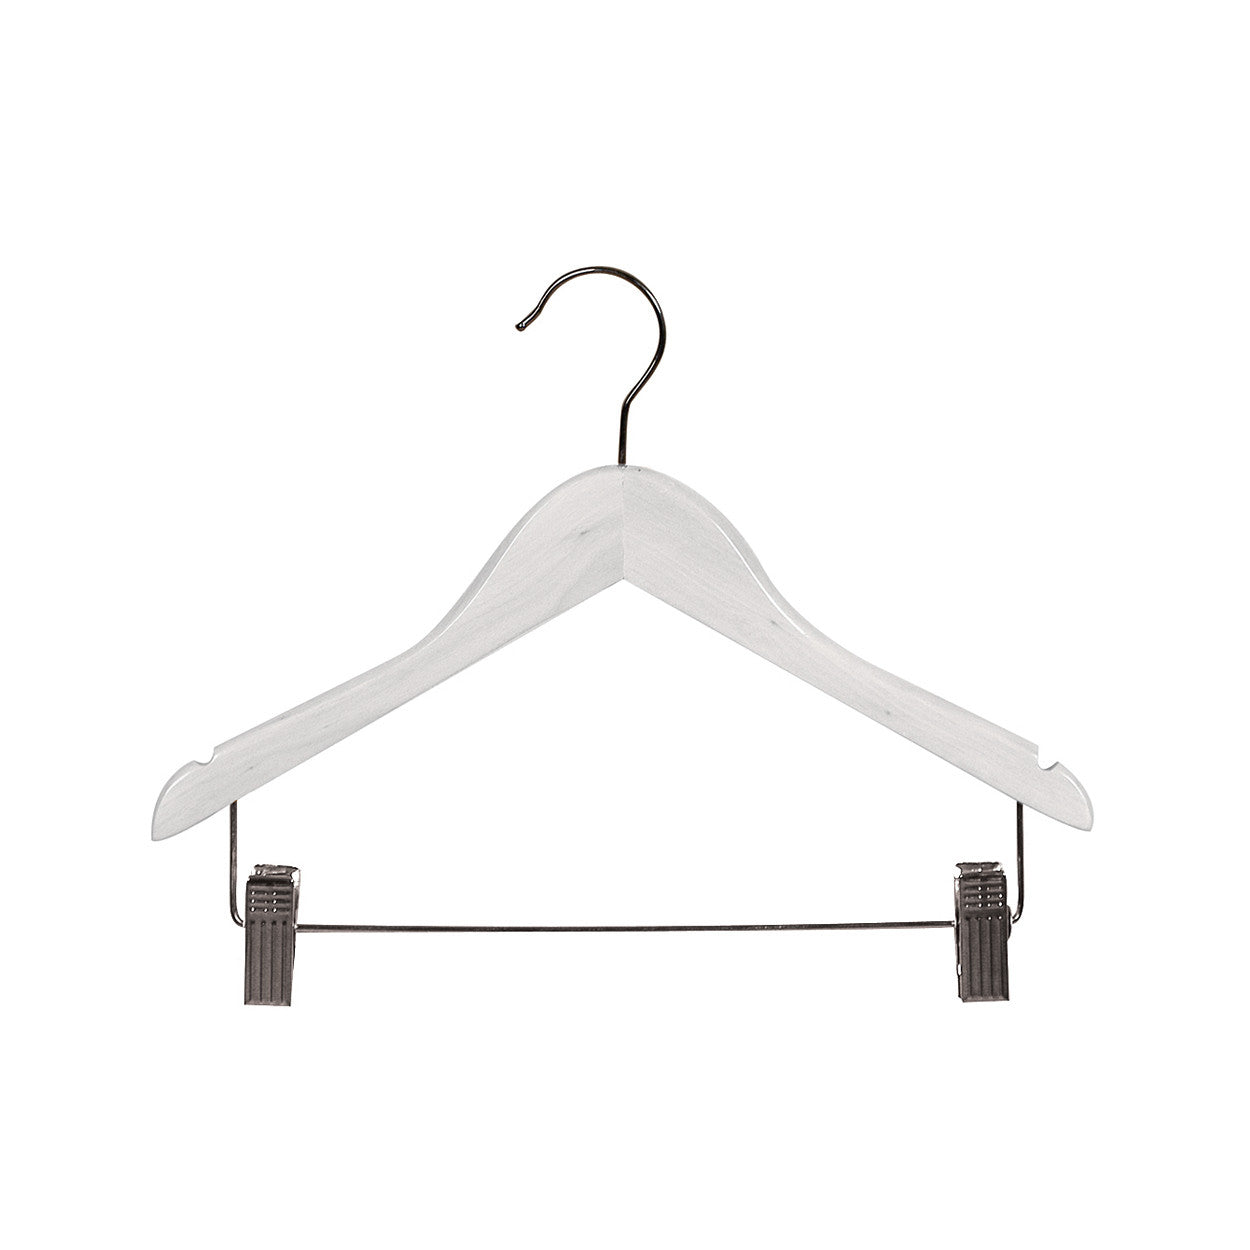 White Kids wooden hanger with notches & adjustable clips 350Wx12 mm Thick (Bundle of 10) H2605WH-10